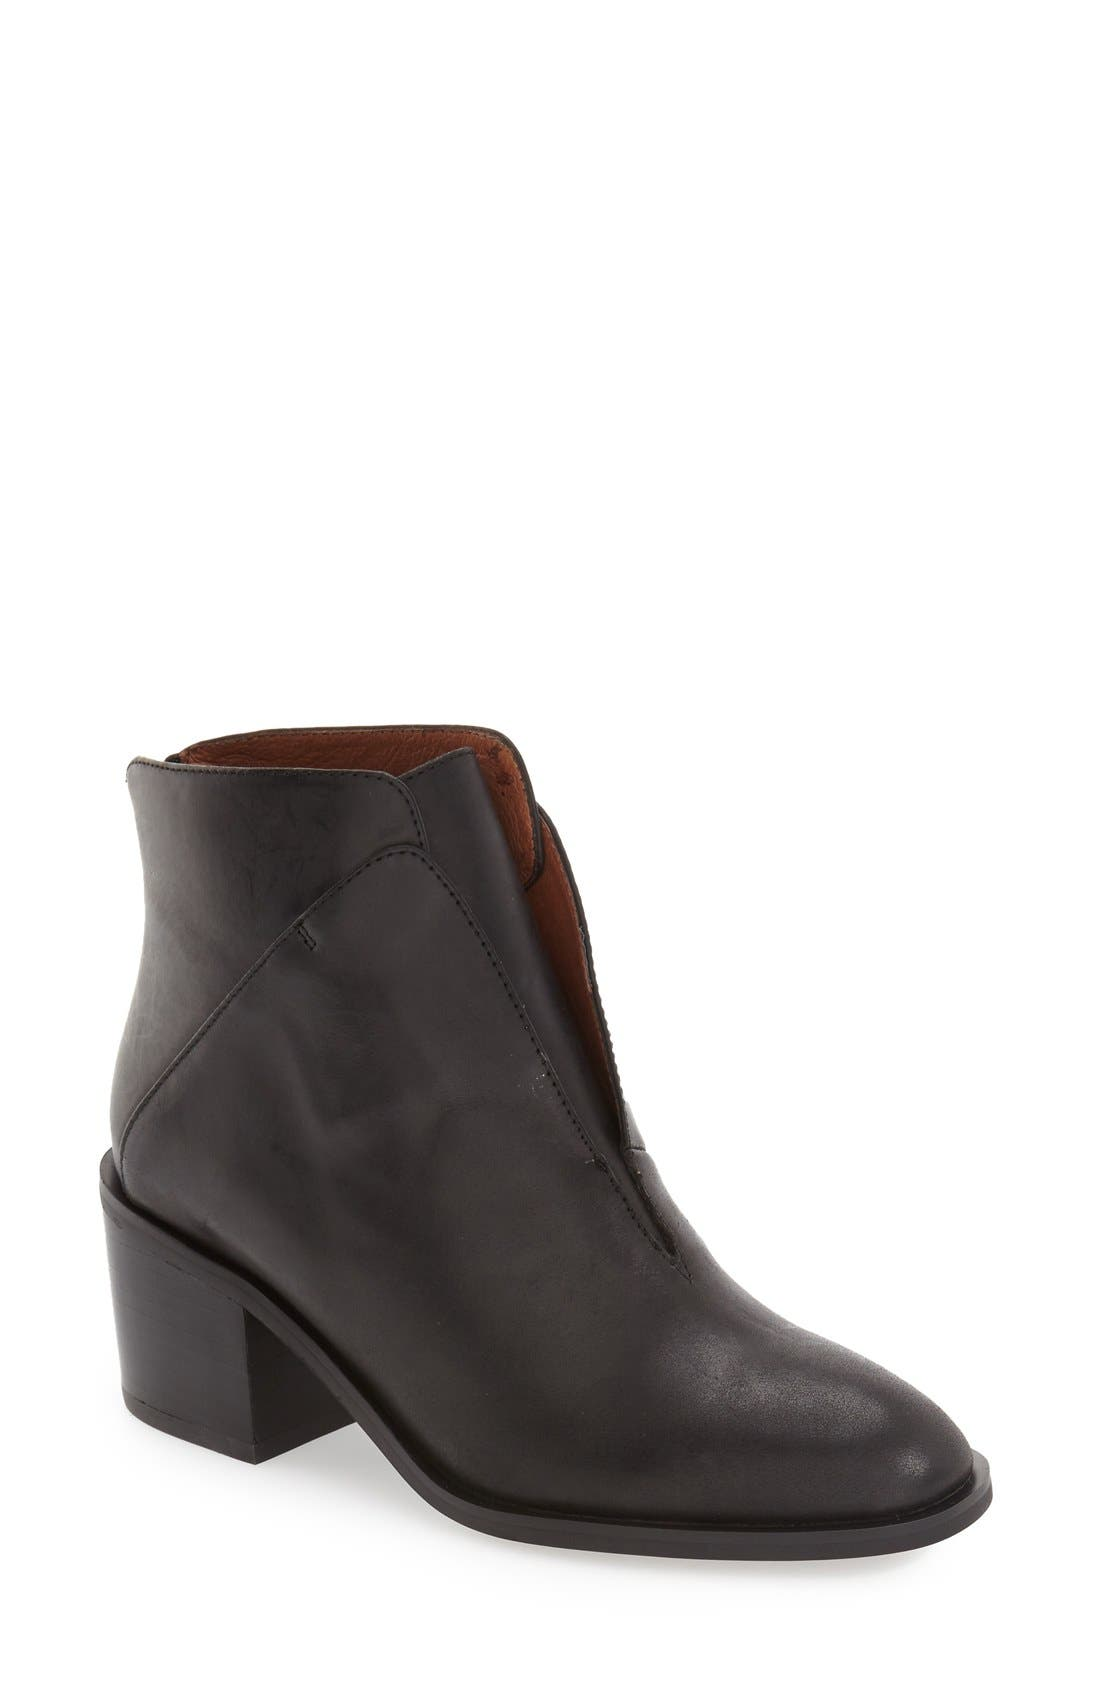 Alternate Image 1 Selected - Jeffrey Campbell 'Jarmaine' Bootie (Women)